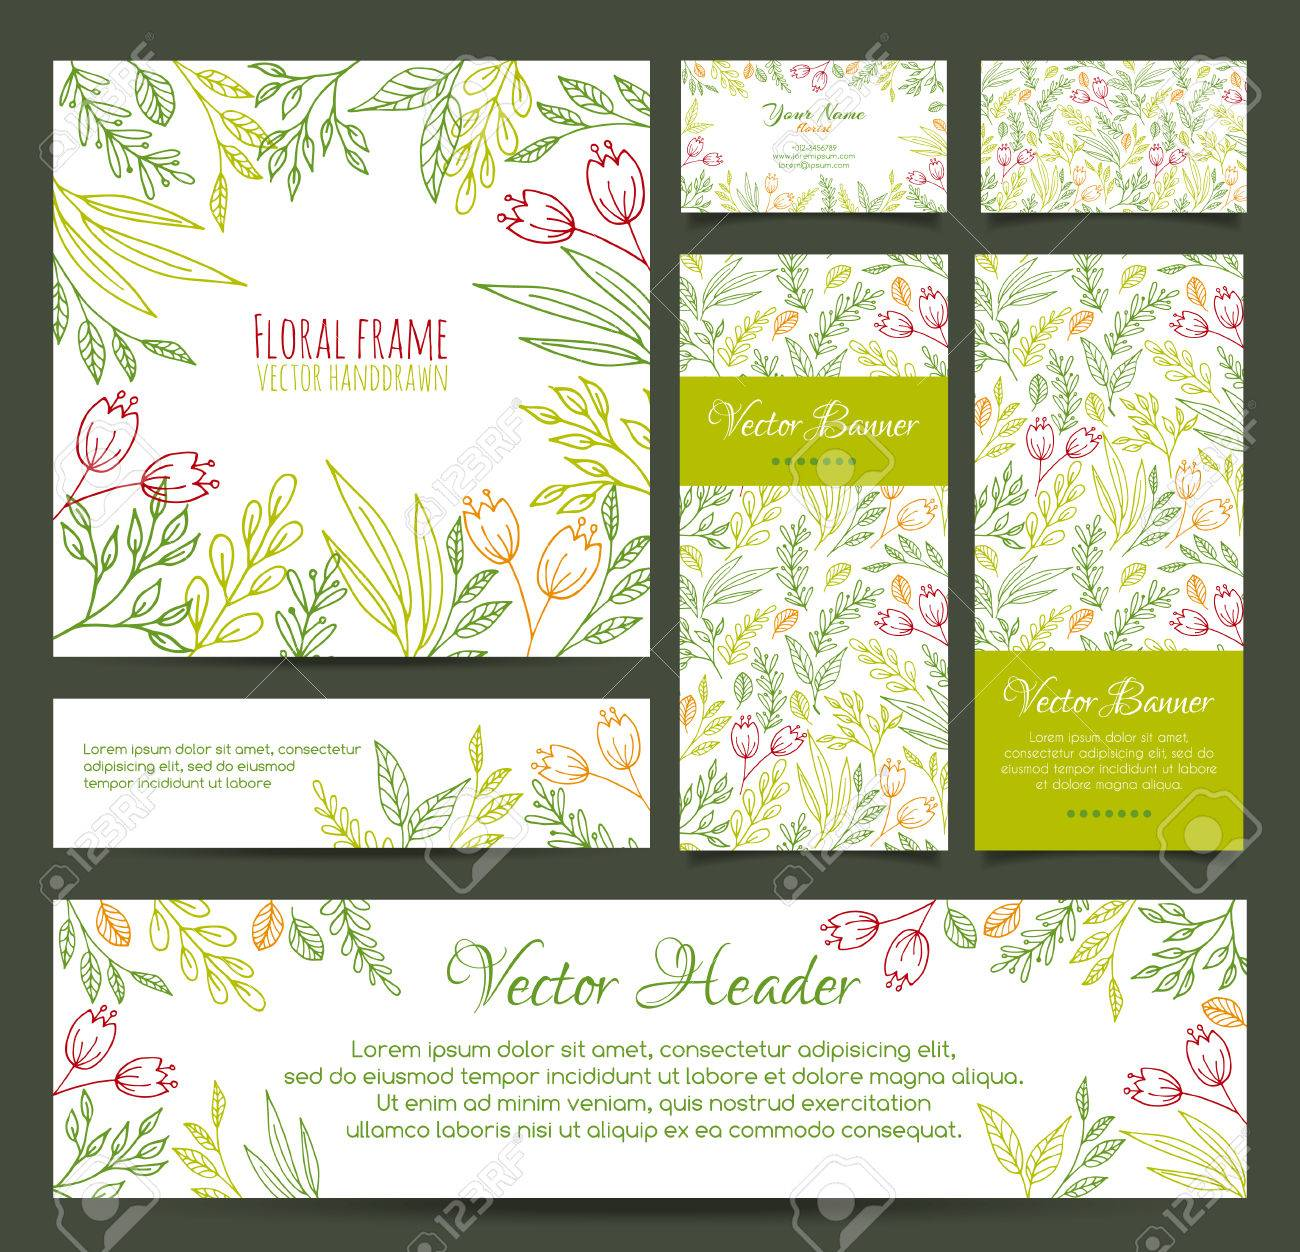 Business card frame images free business cards set of vector banners business card frame invitations and set of vector banners business card frame magicingreecefo Gallery